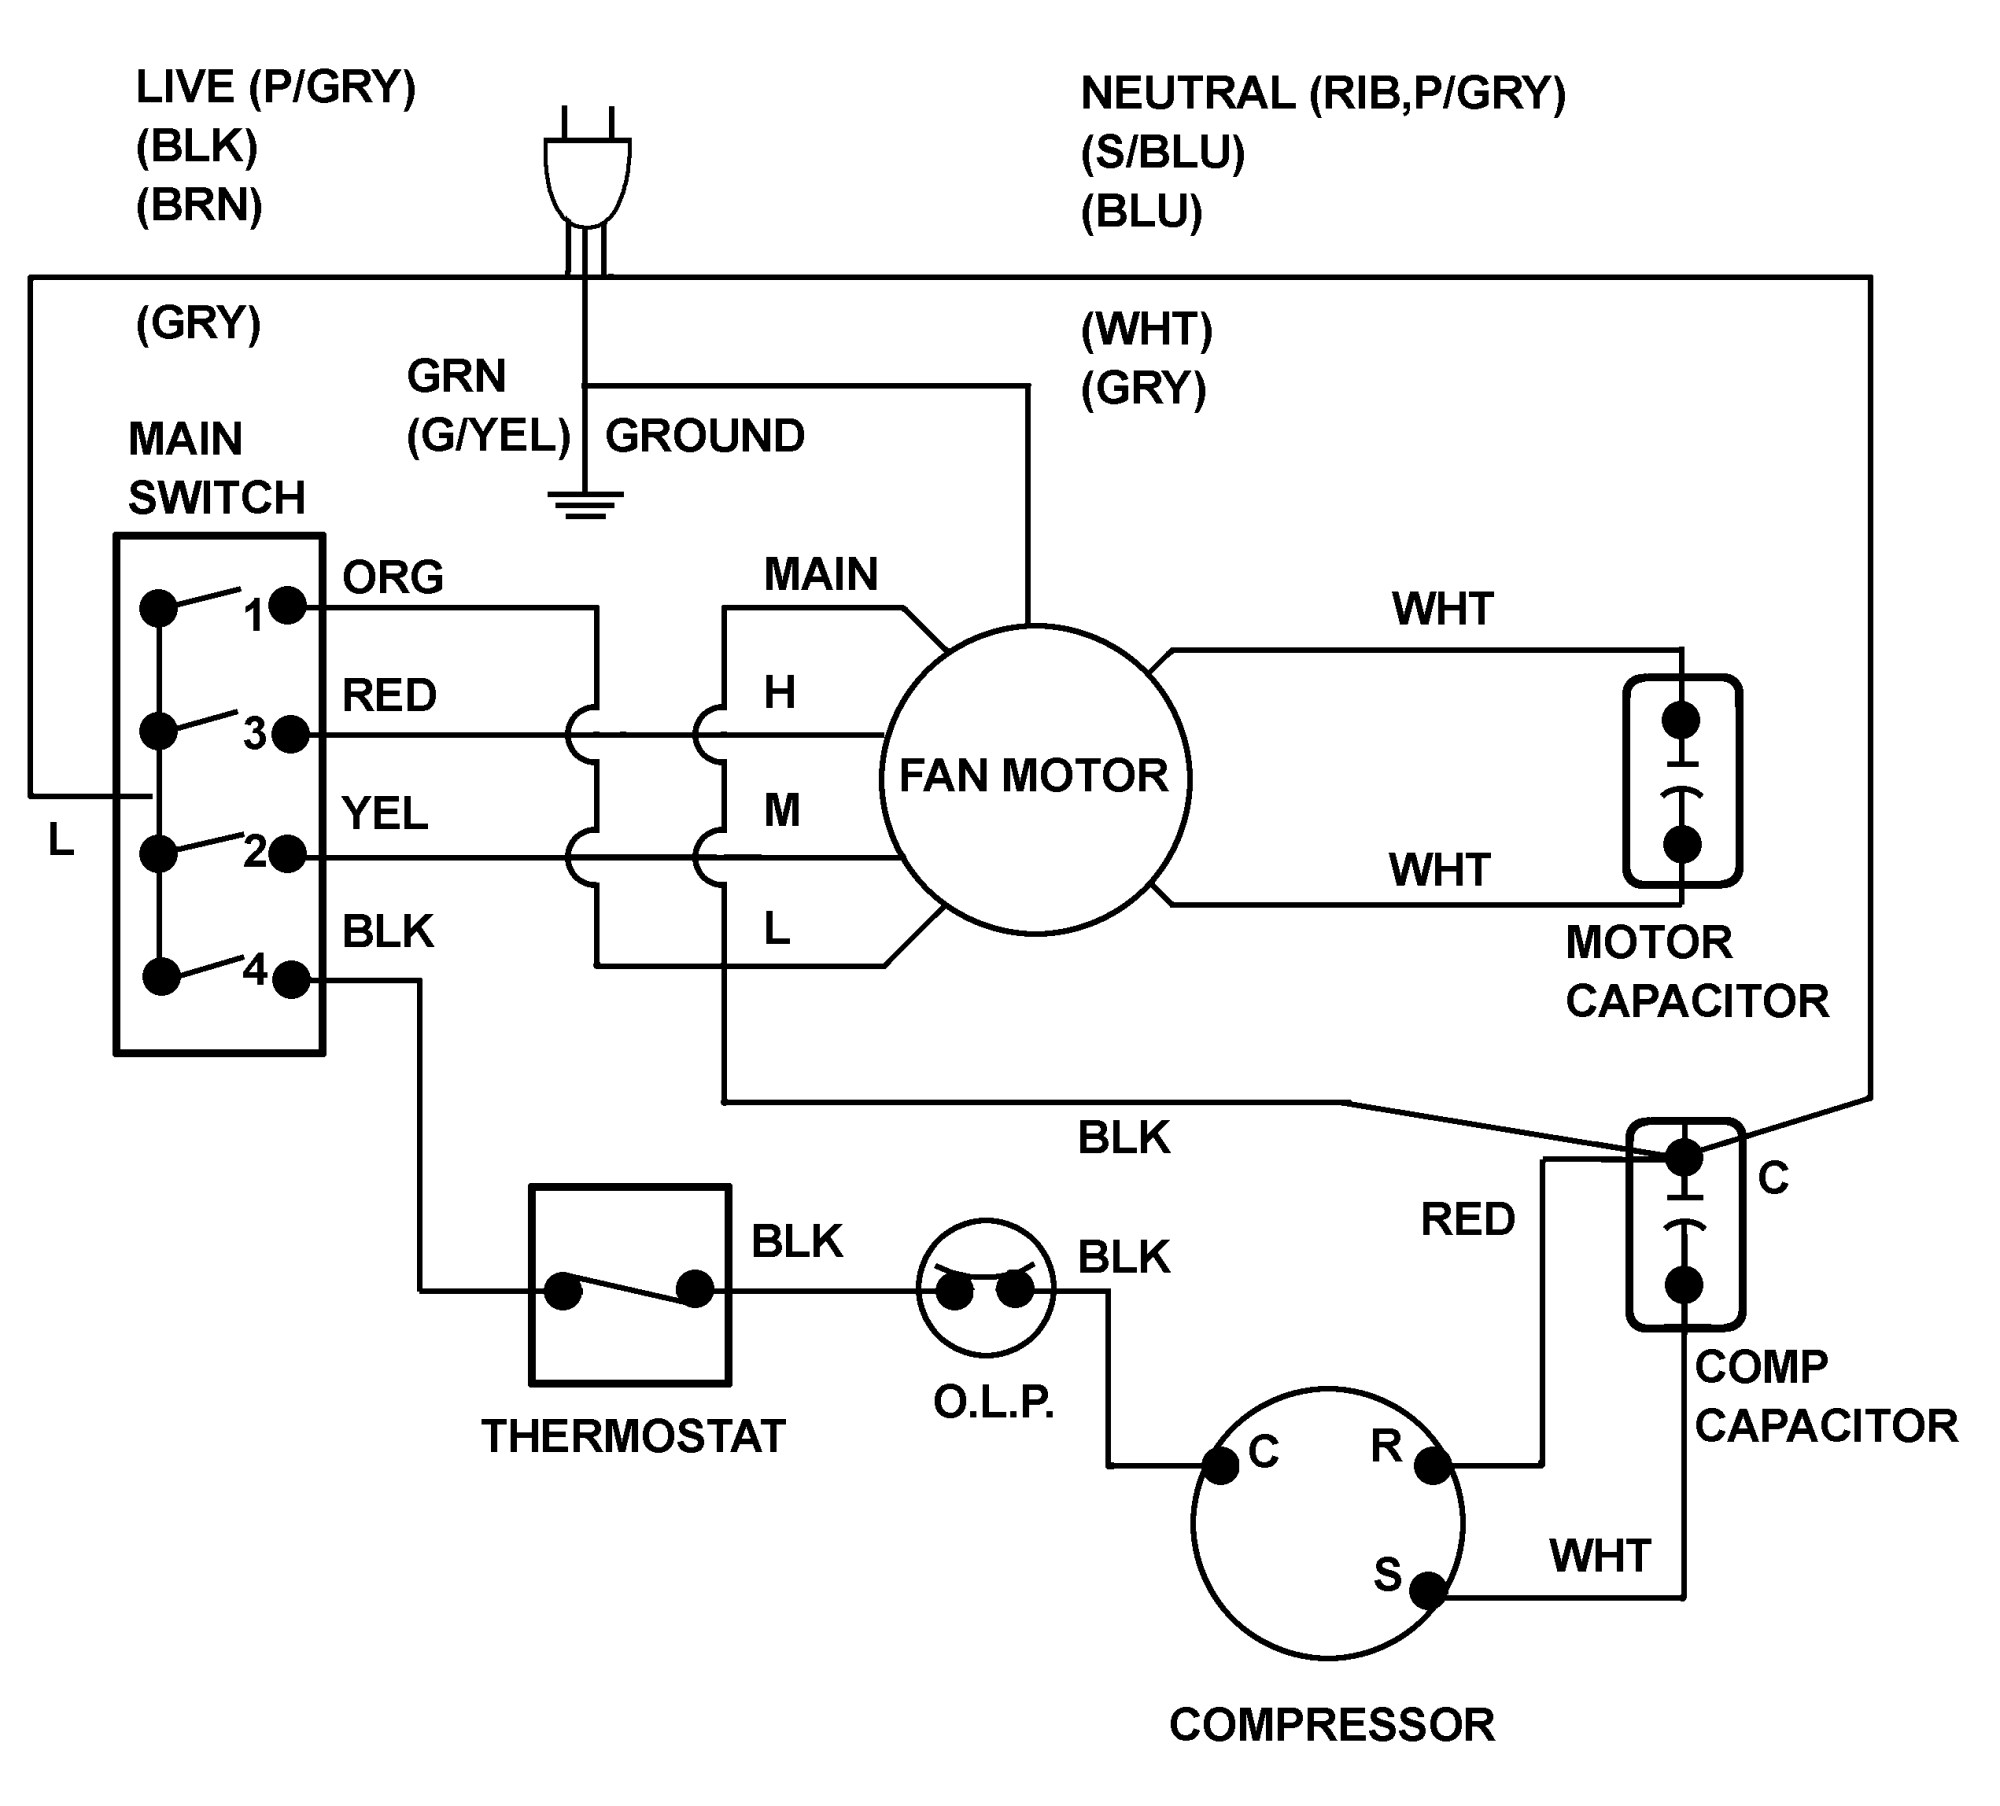 hight resolution of kia ac wiring diagram wiring diagram rows 2006 kia sorento engine diagram